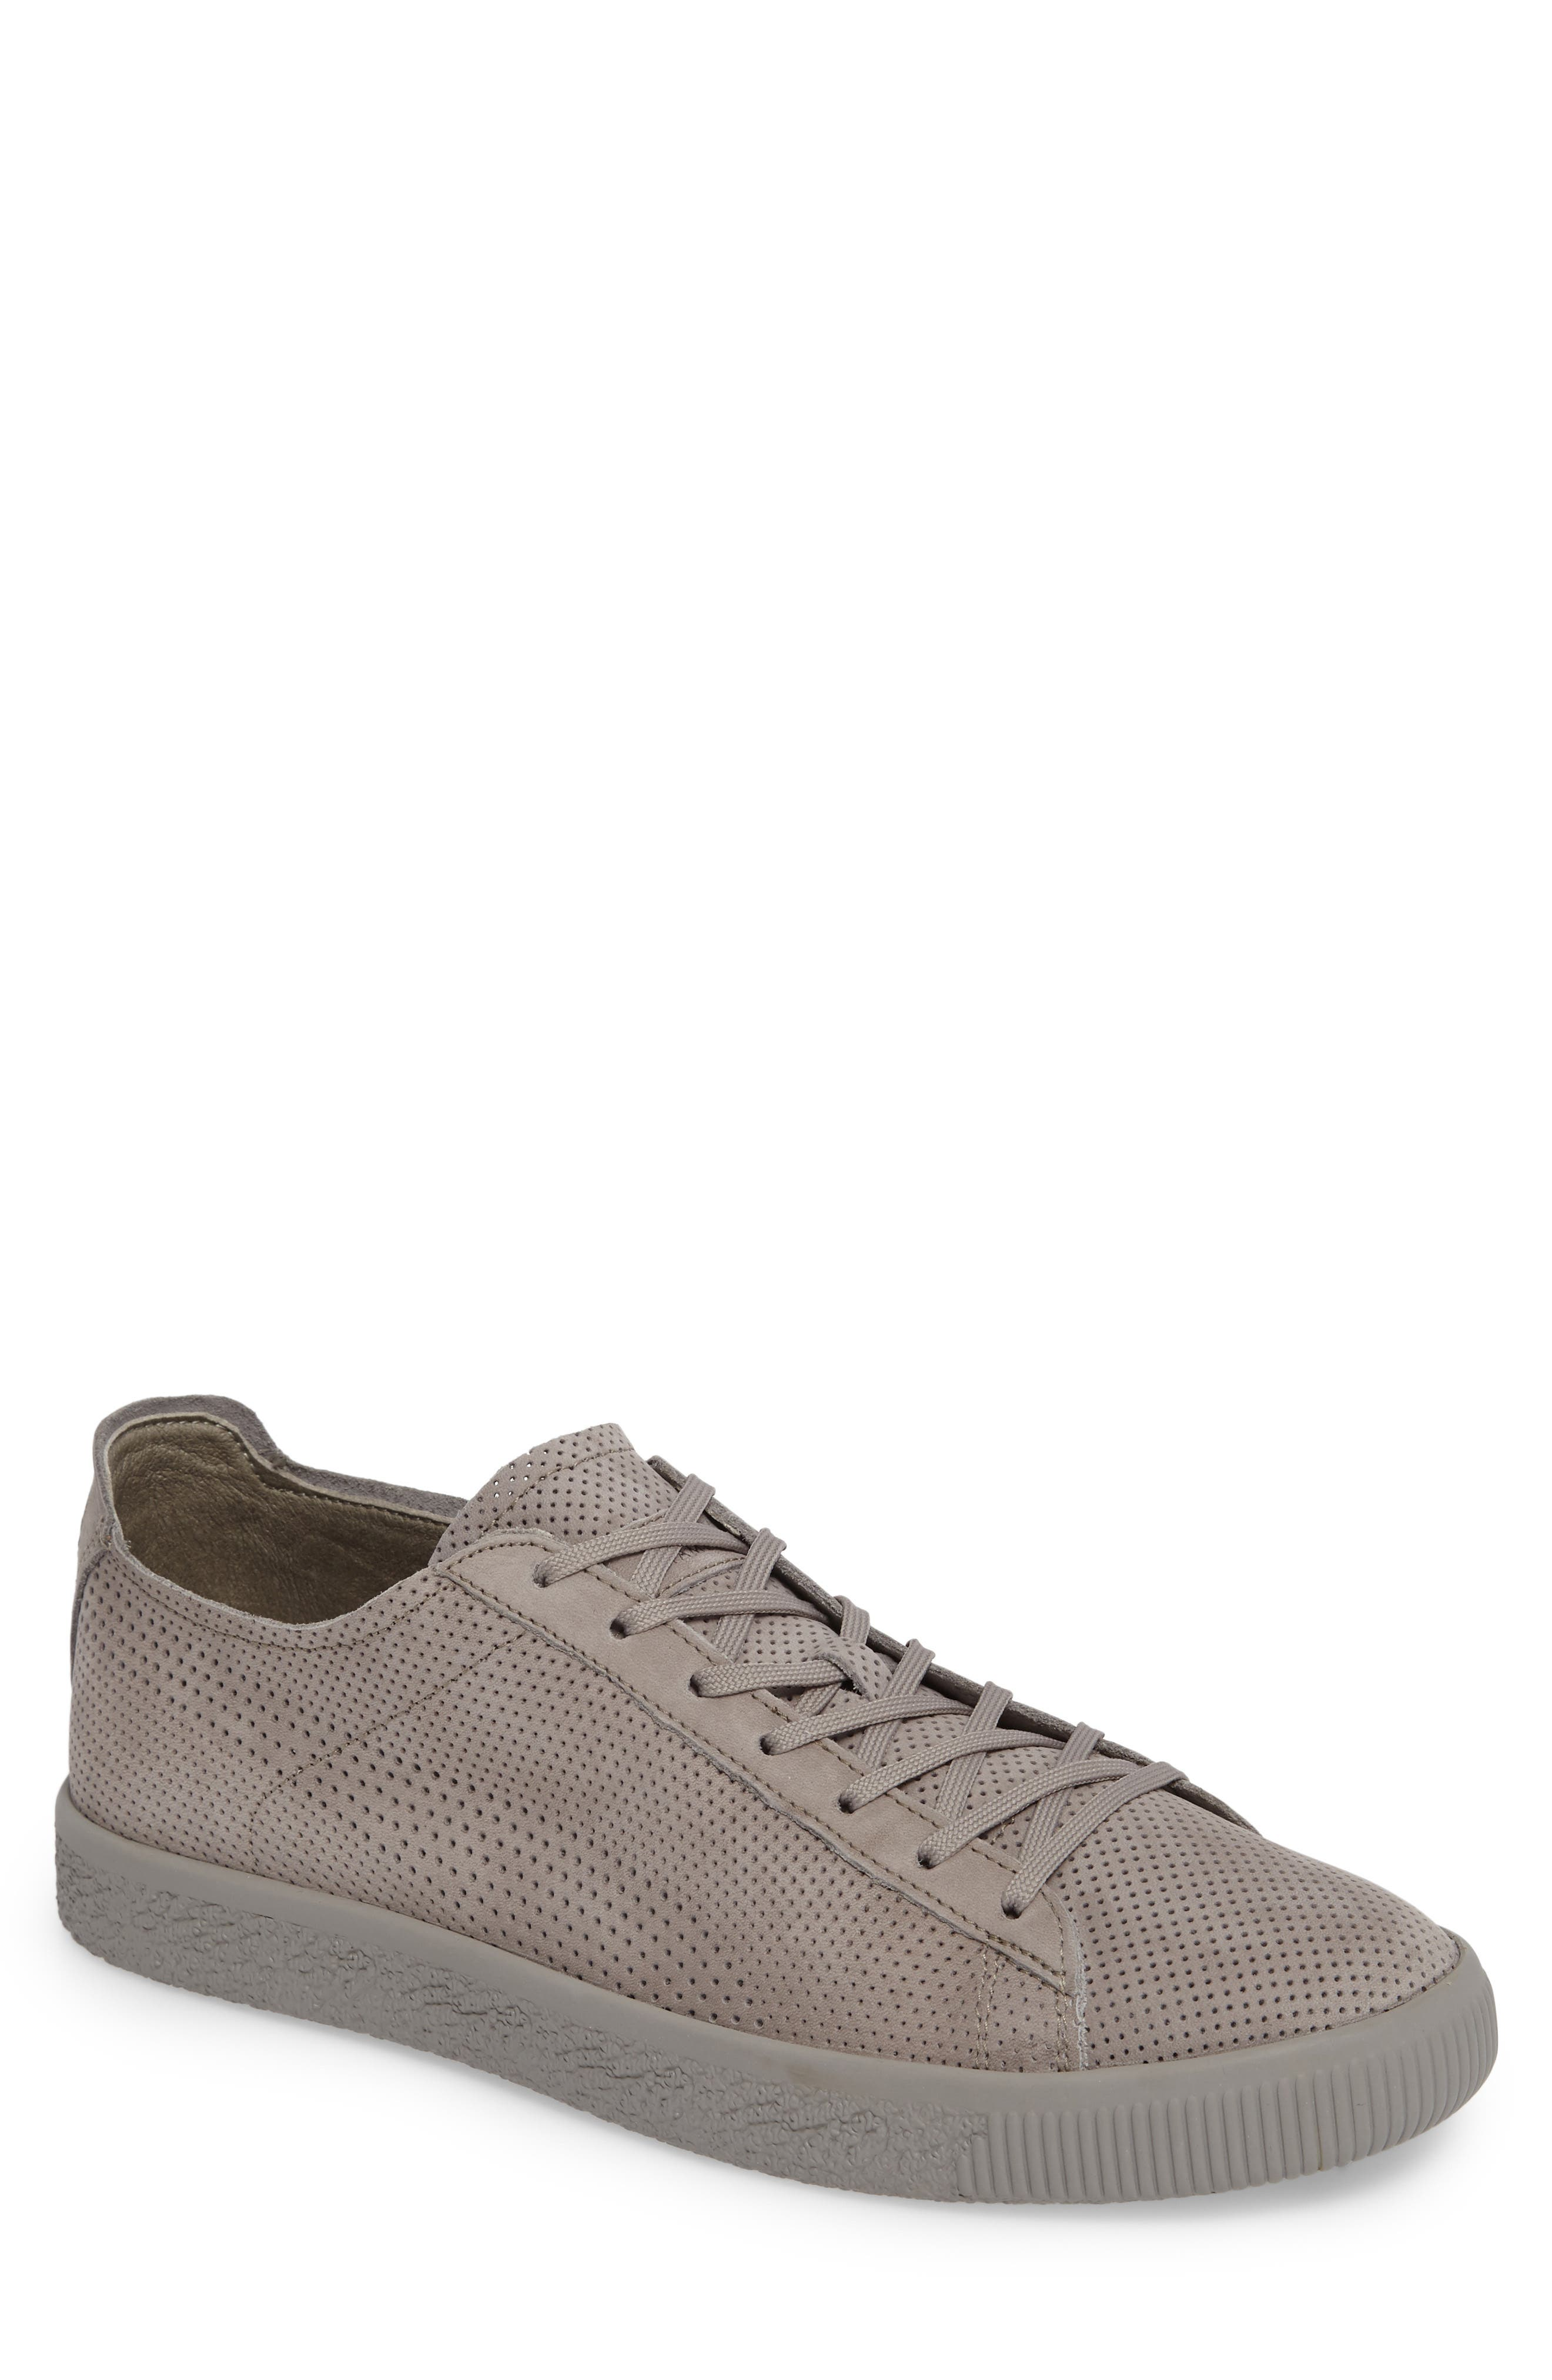 Stampd Clyde Sneaker,                         Main,                         color, Drizzle/ Drizzle Leather